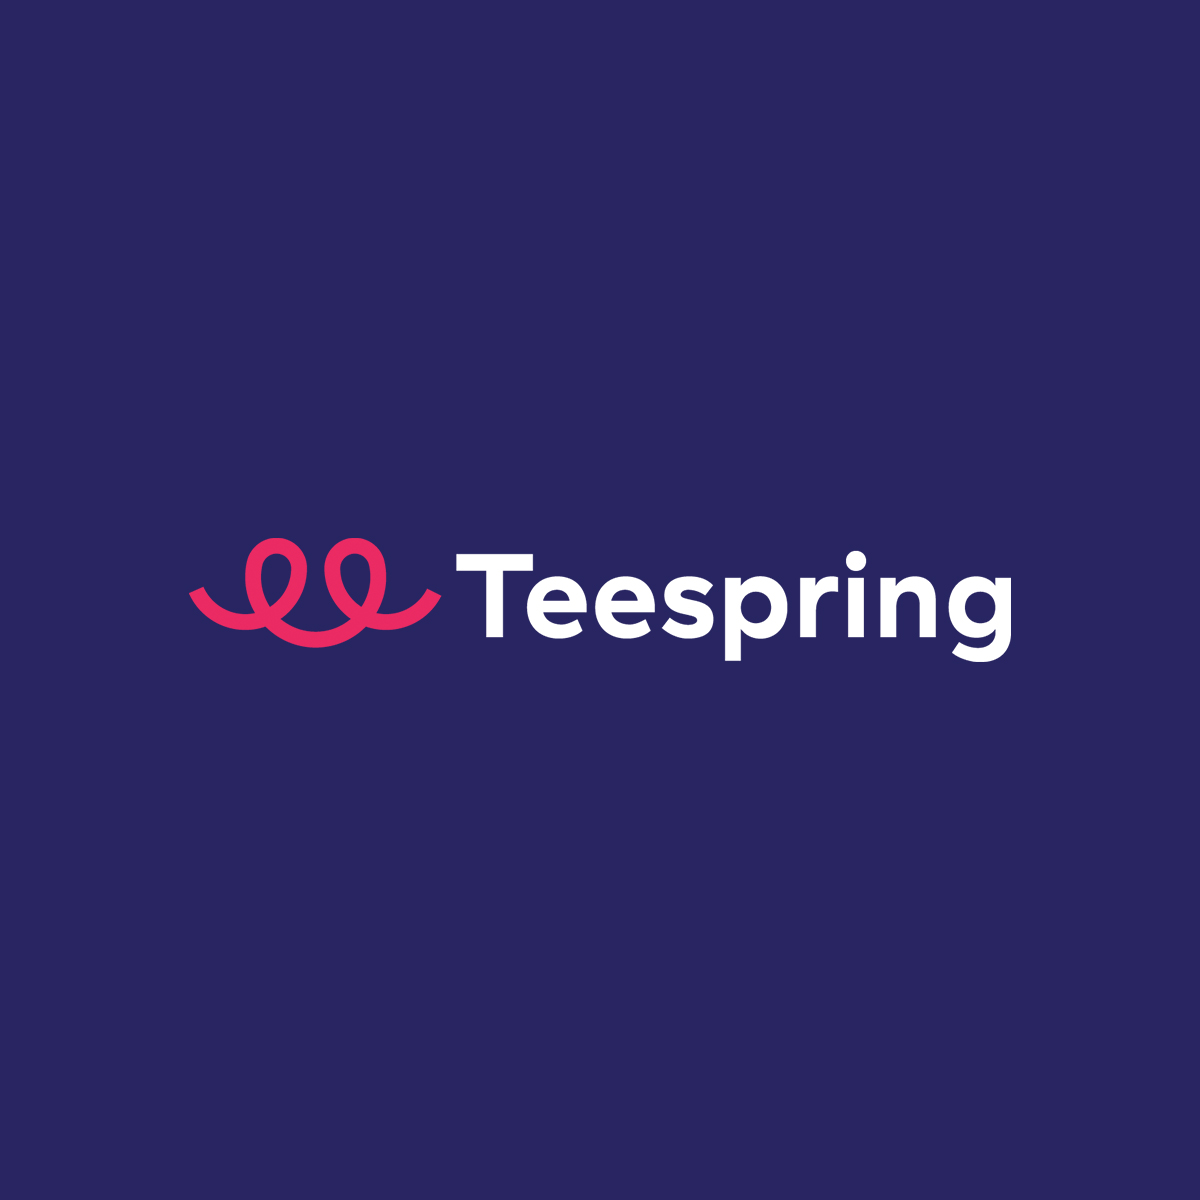 Teespring - The best way to sell custom apparel online!